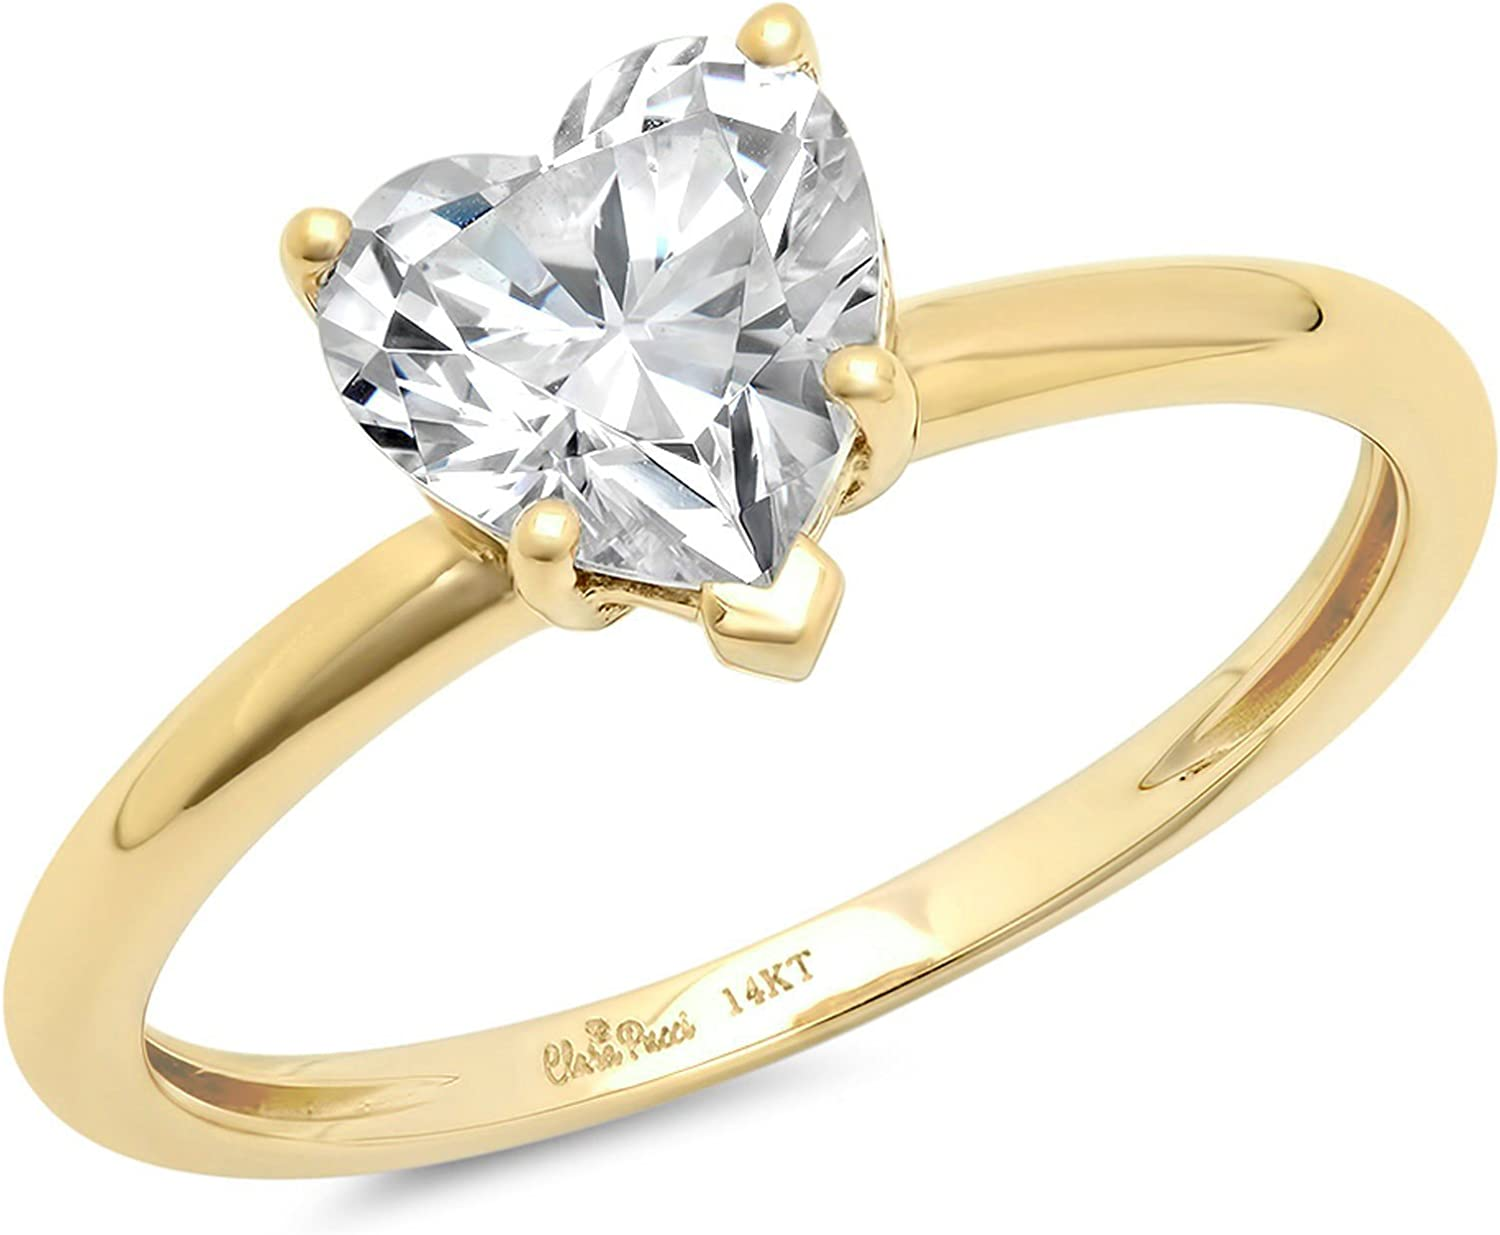 1.9ct Brilliant Heart Cut Solitaire Genuine Lab Created White Sapphire Ideal VVS1 D 5-Prong Engagement Wedding Bridal Promise Anniversary Ring Solid 14k Yellow Gold for Women